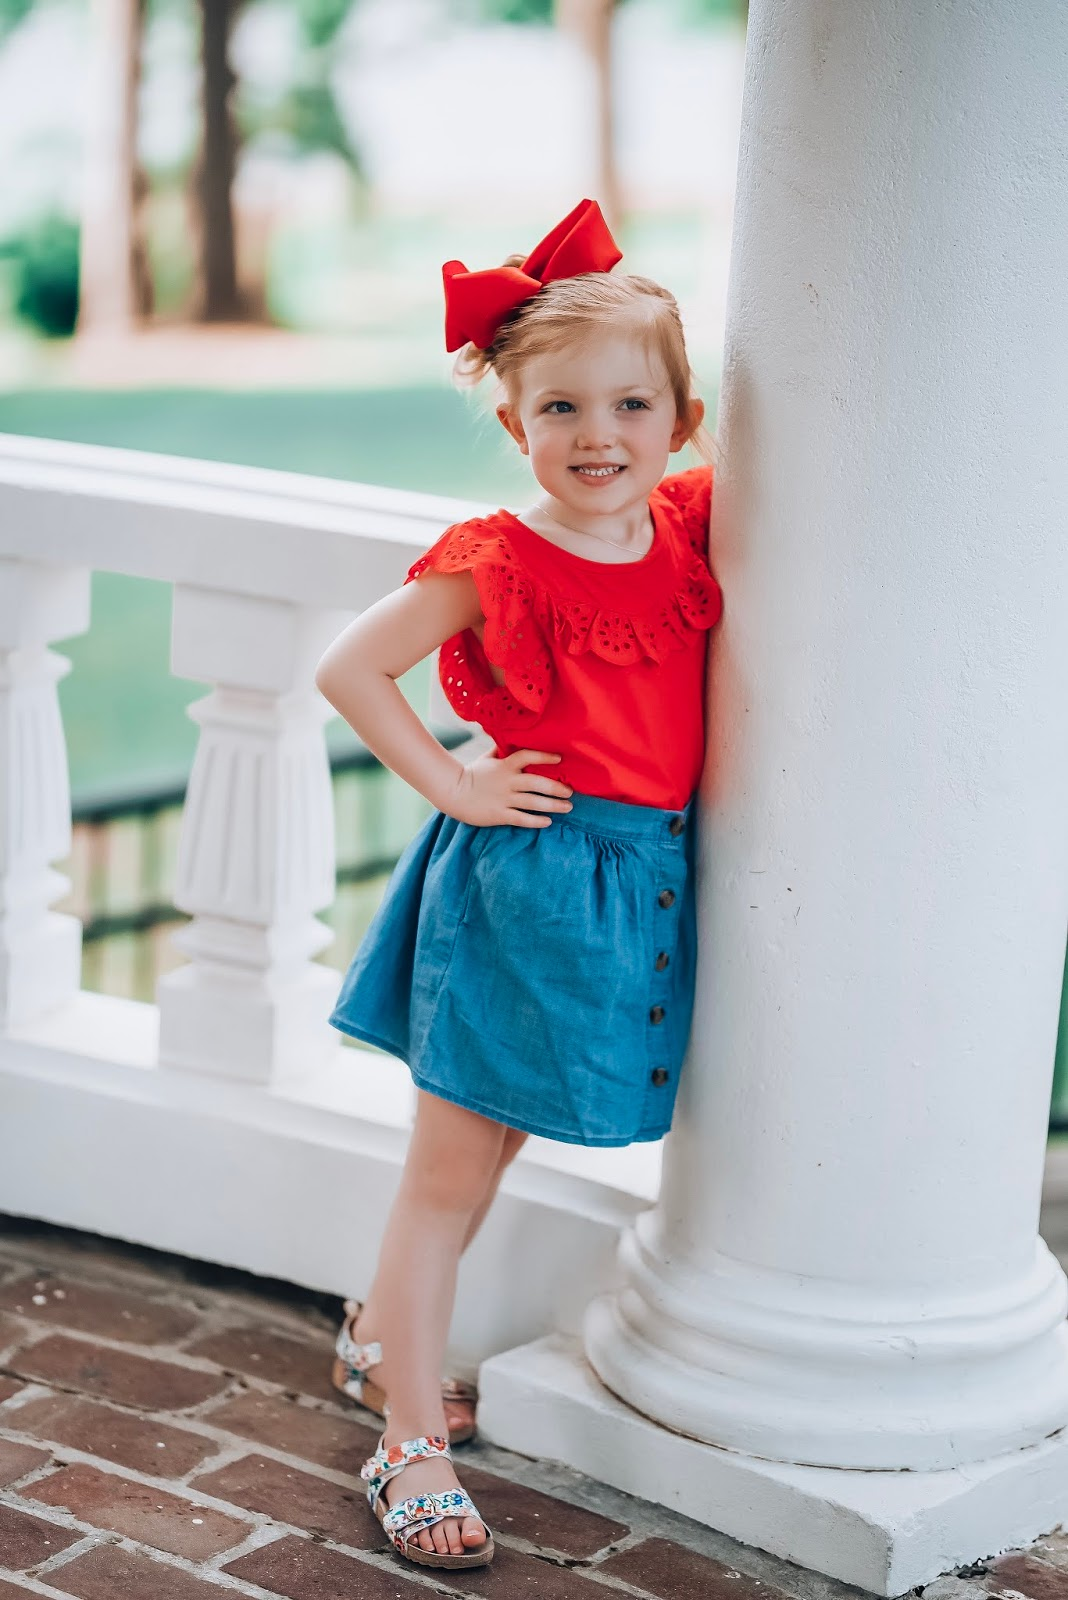 The Best Way to Wear Chambray: Toddler Girl Style Chambray Skirt + Red Eyelet Top - Something Delightful Blog